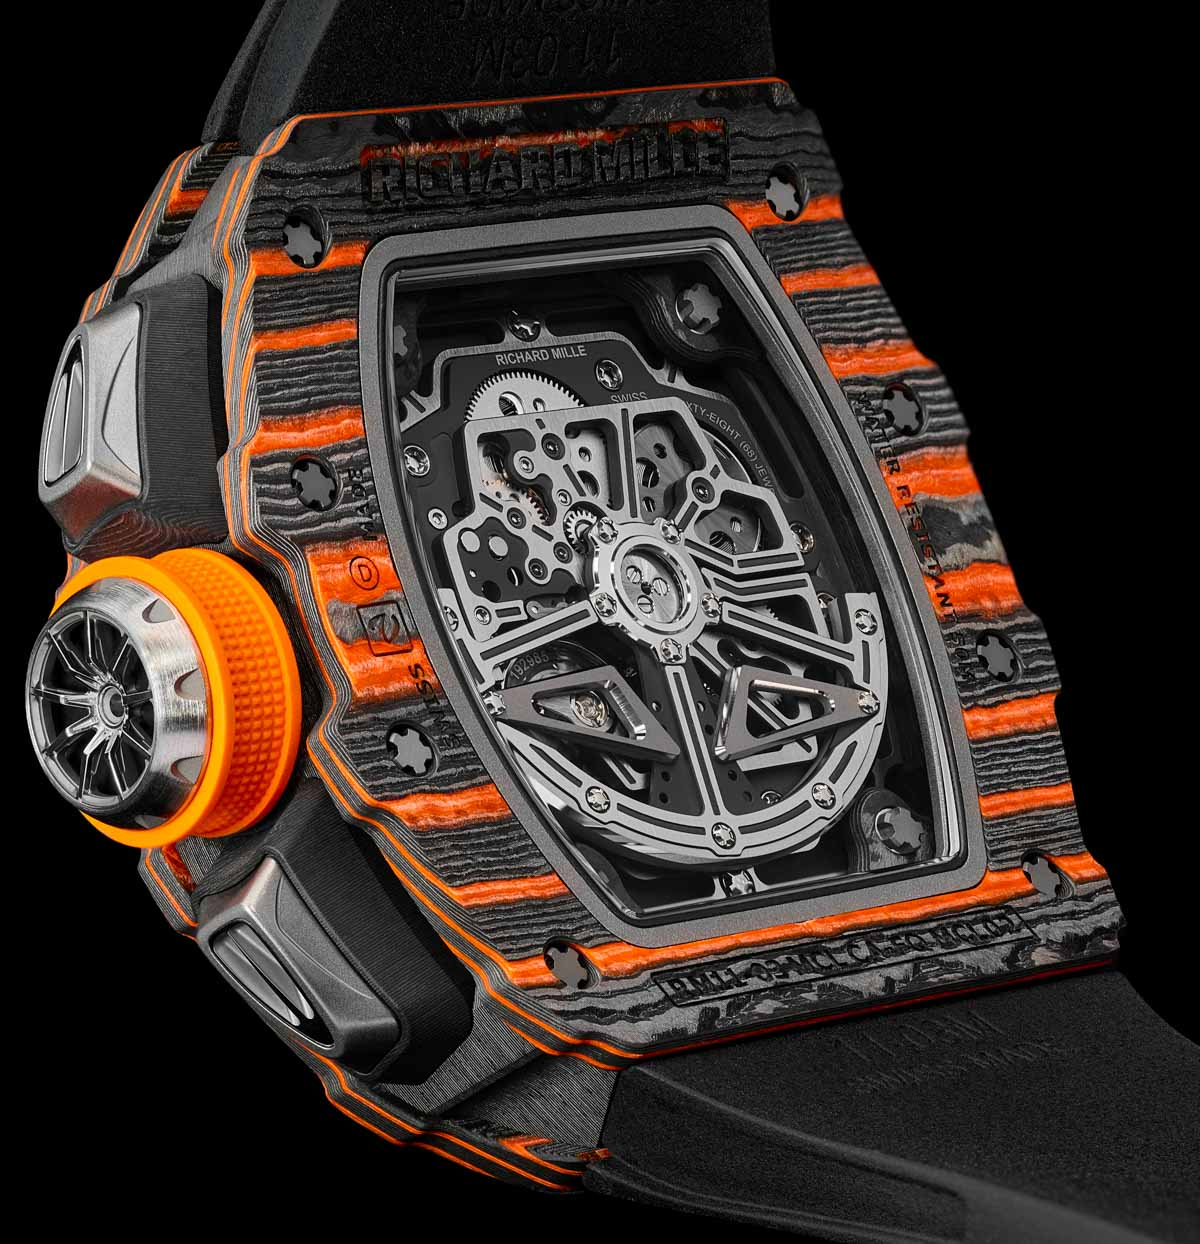 Richard Mille RM 11-03 McLaren Automatic Flyback Chronograph Watch Releases